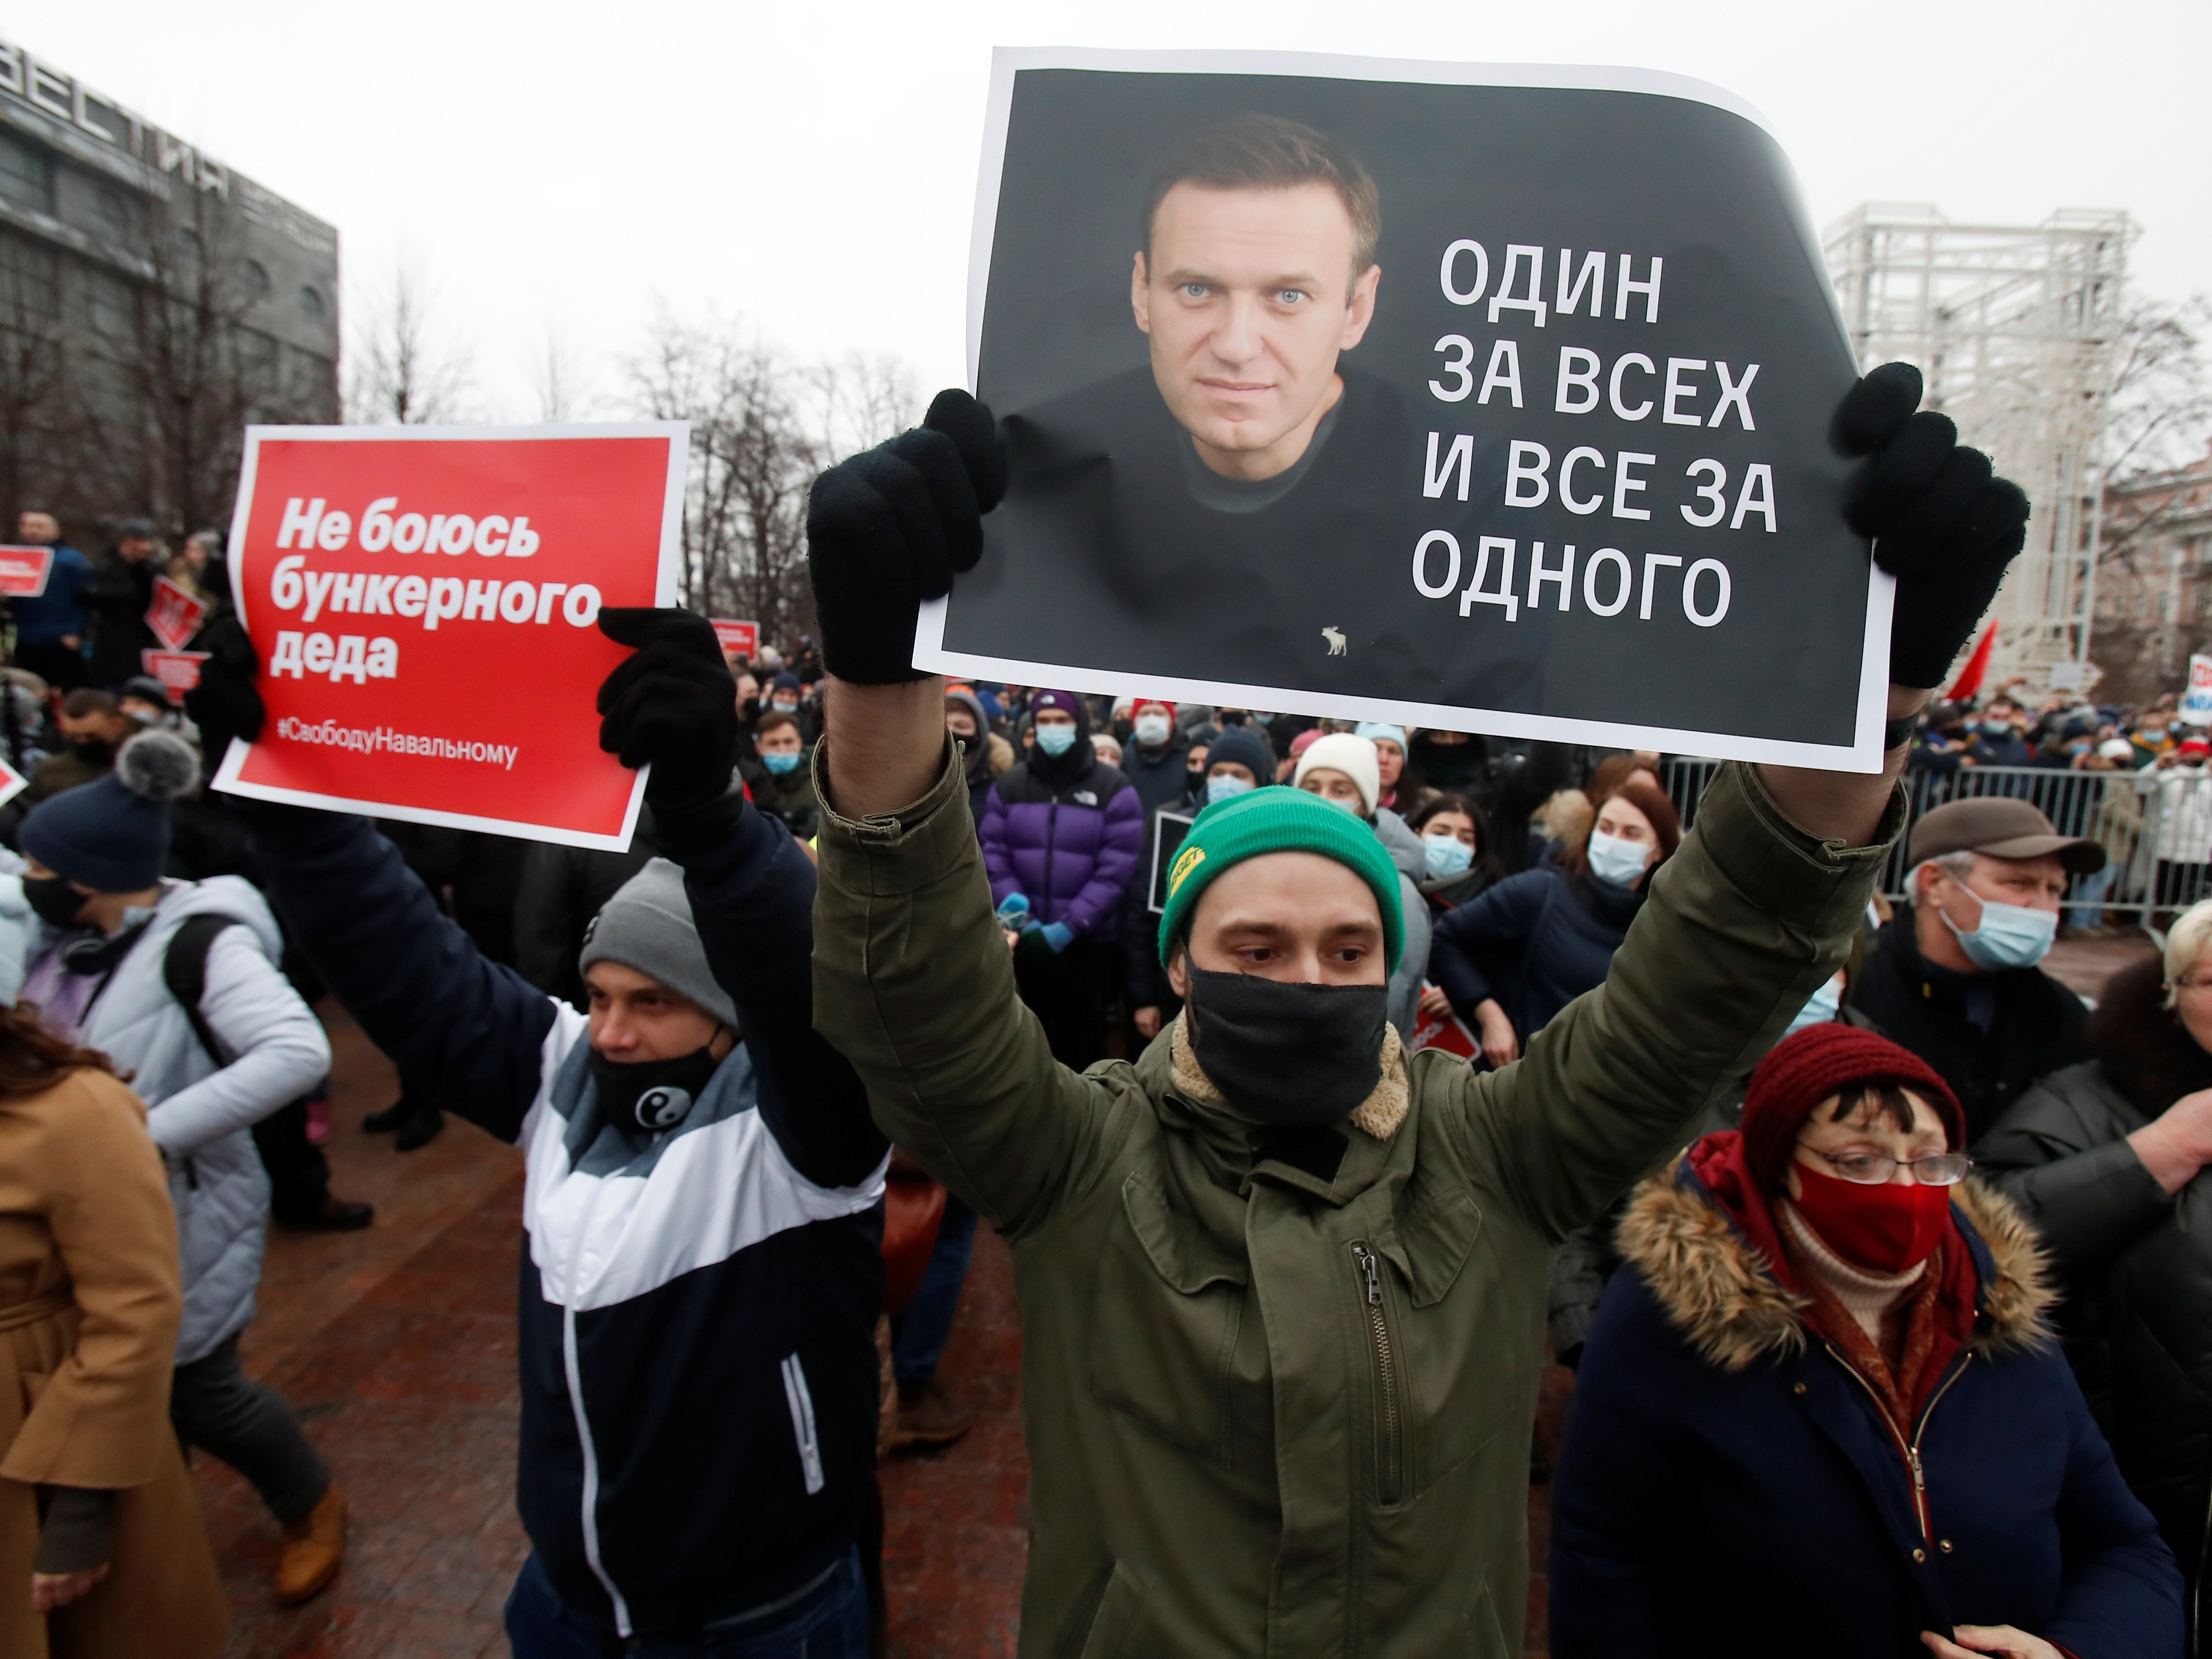 Alexi Navalny supporters detained as thousands take part in protests across Russia